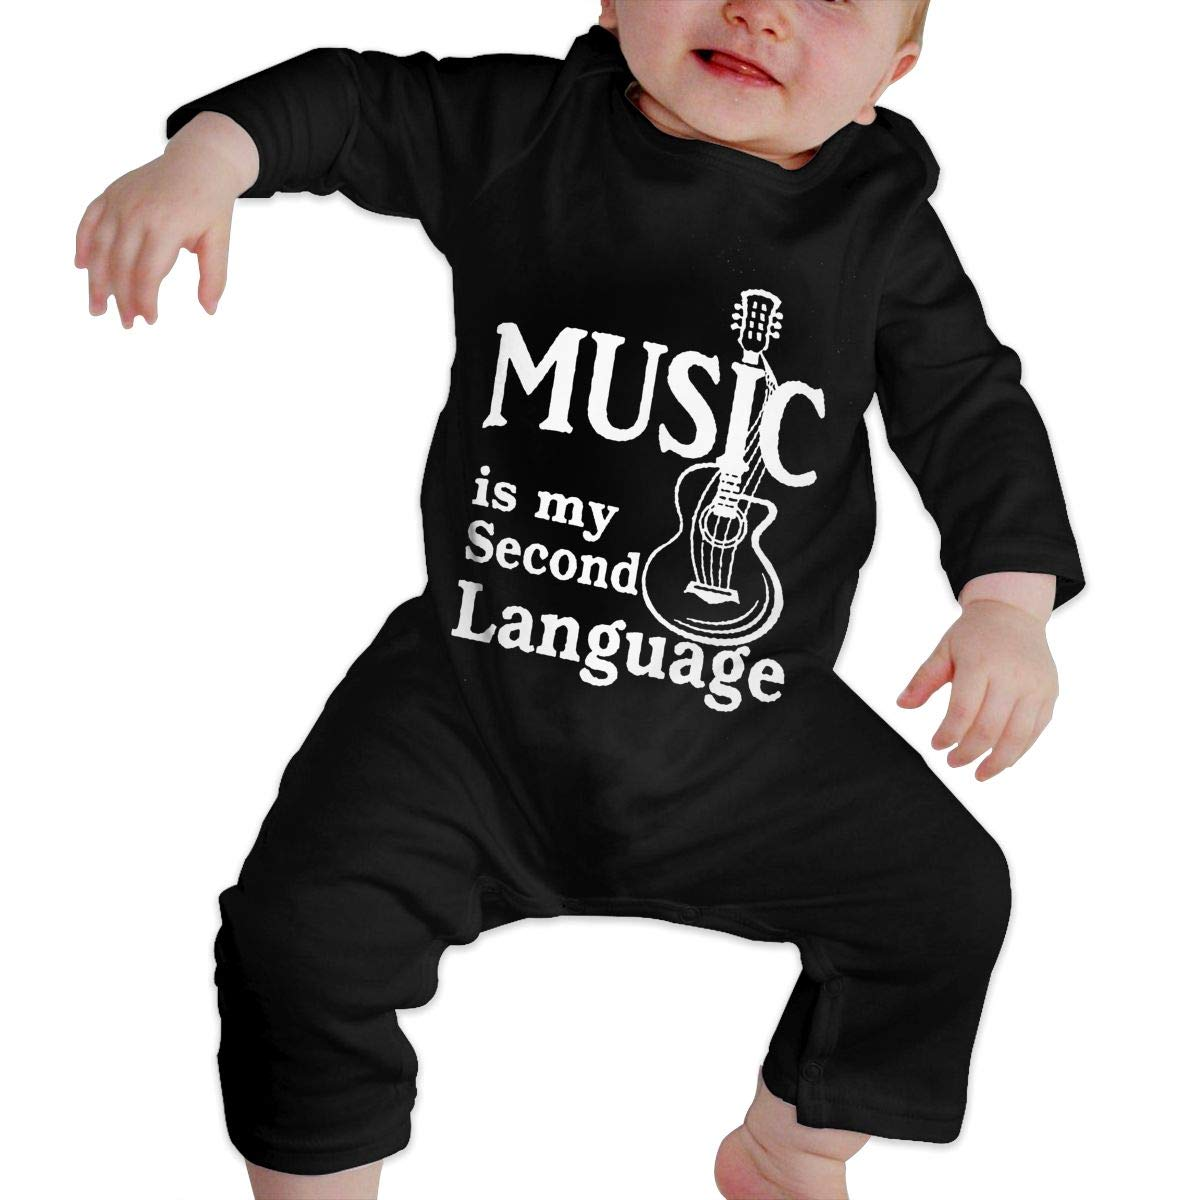 Music Second Language Long Sleeve Baby Gown Baby Bodysuit Footed Pajamas Jumpsuit